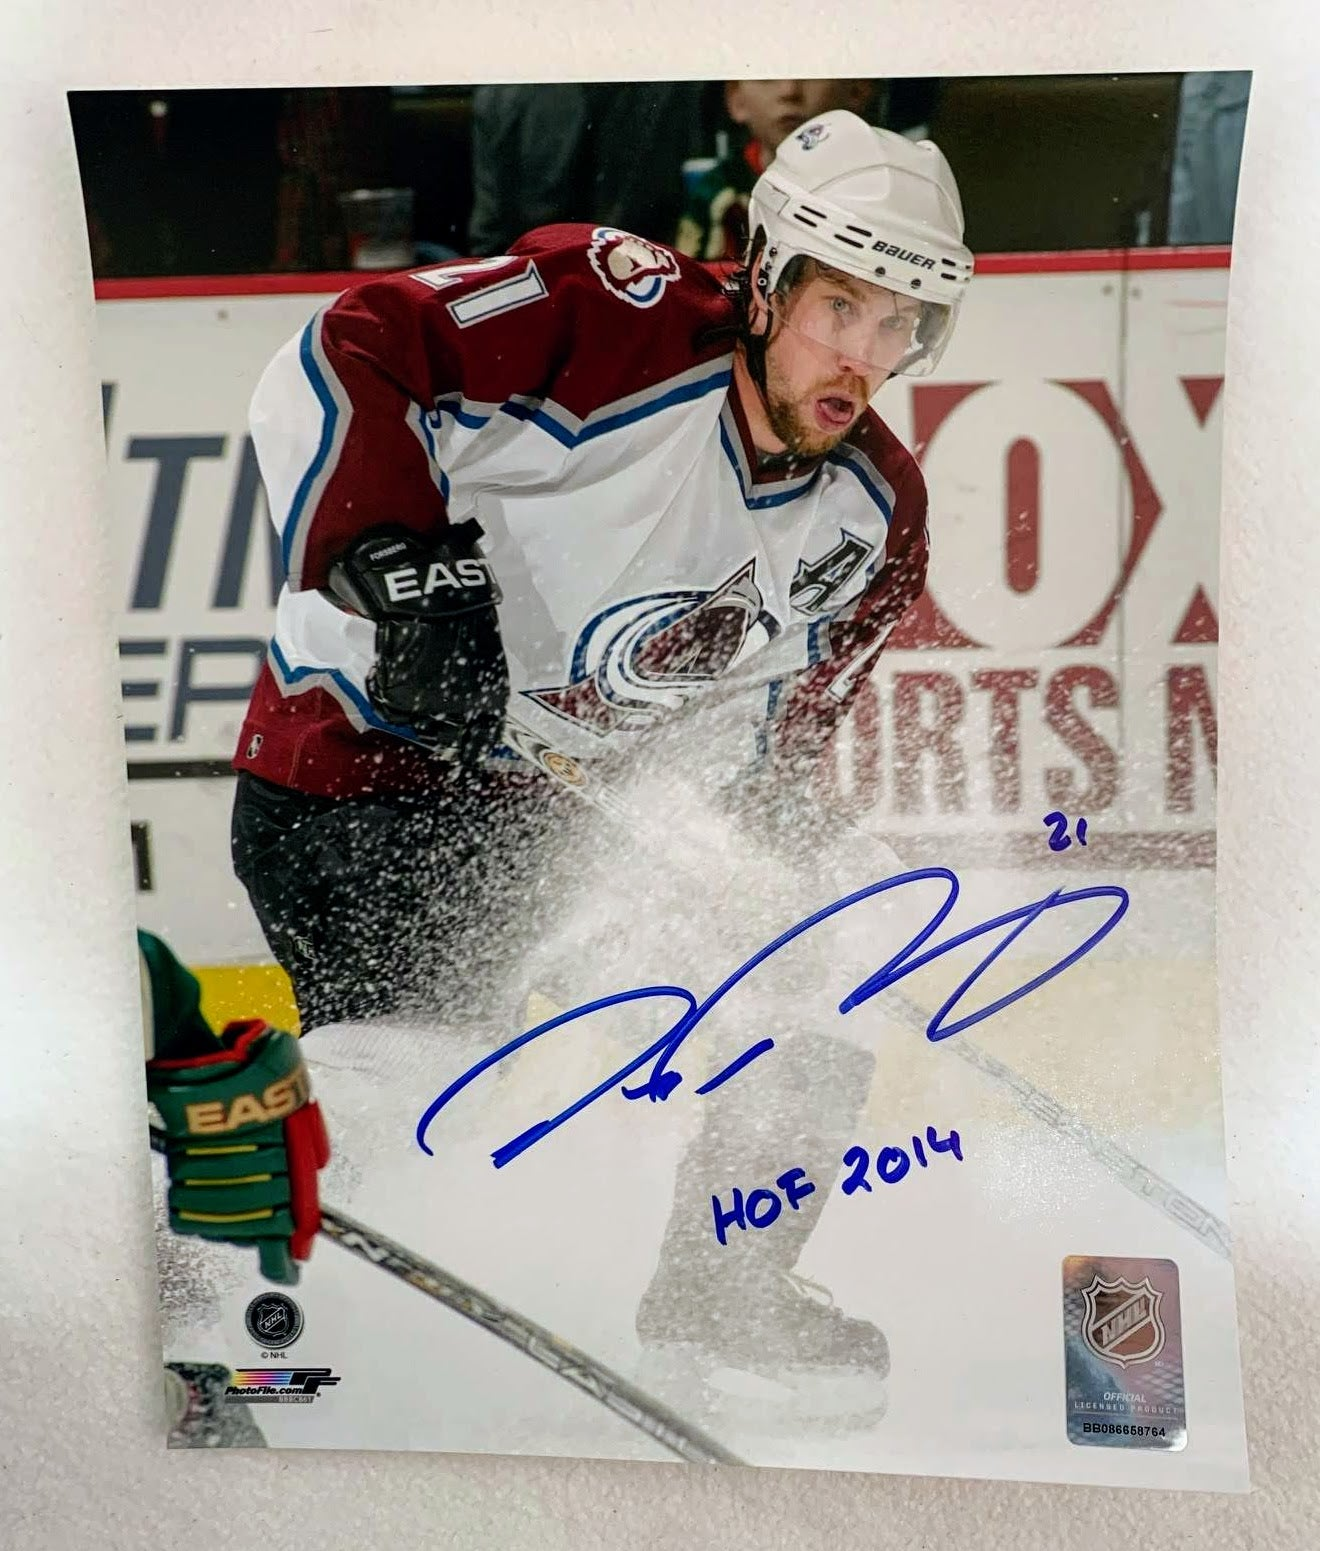 Peter Forsberg Autographed 8x10 Photo (Colorado Avalanche) LSM COA - Latitude Sports Marketing